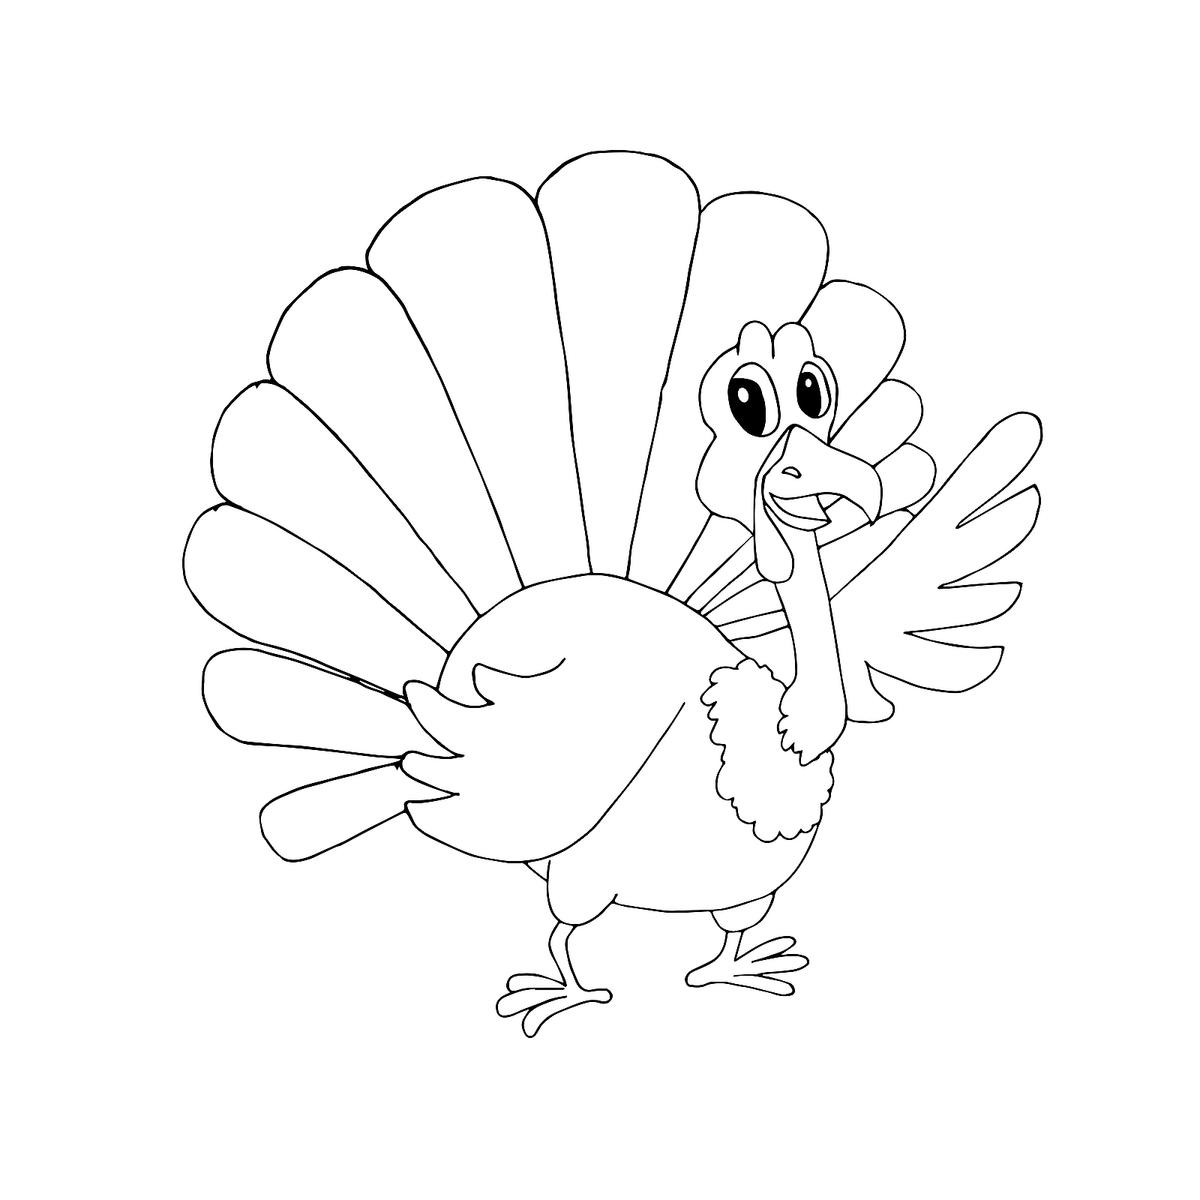 Thanksgiving Coloring Pages for Turkey Day: 12 Free ...